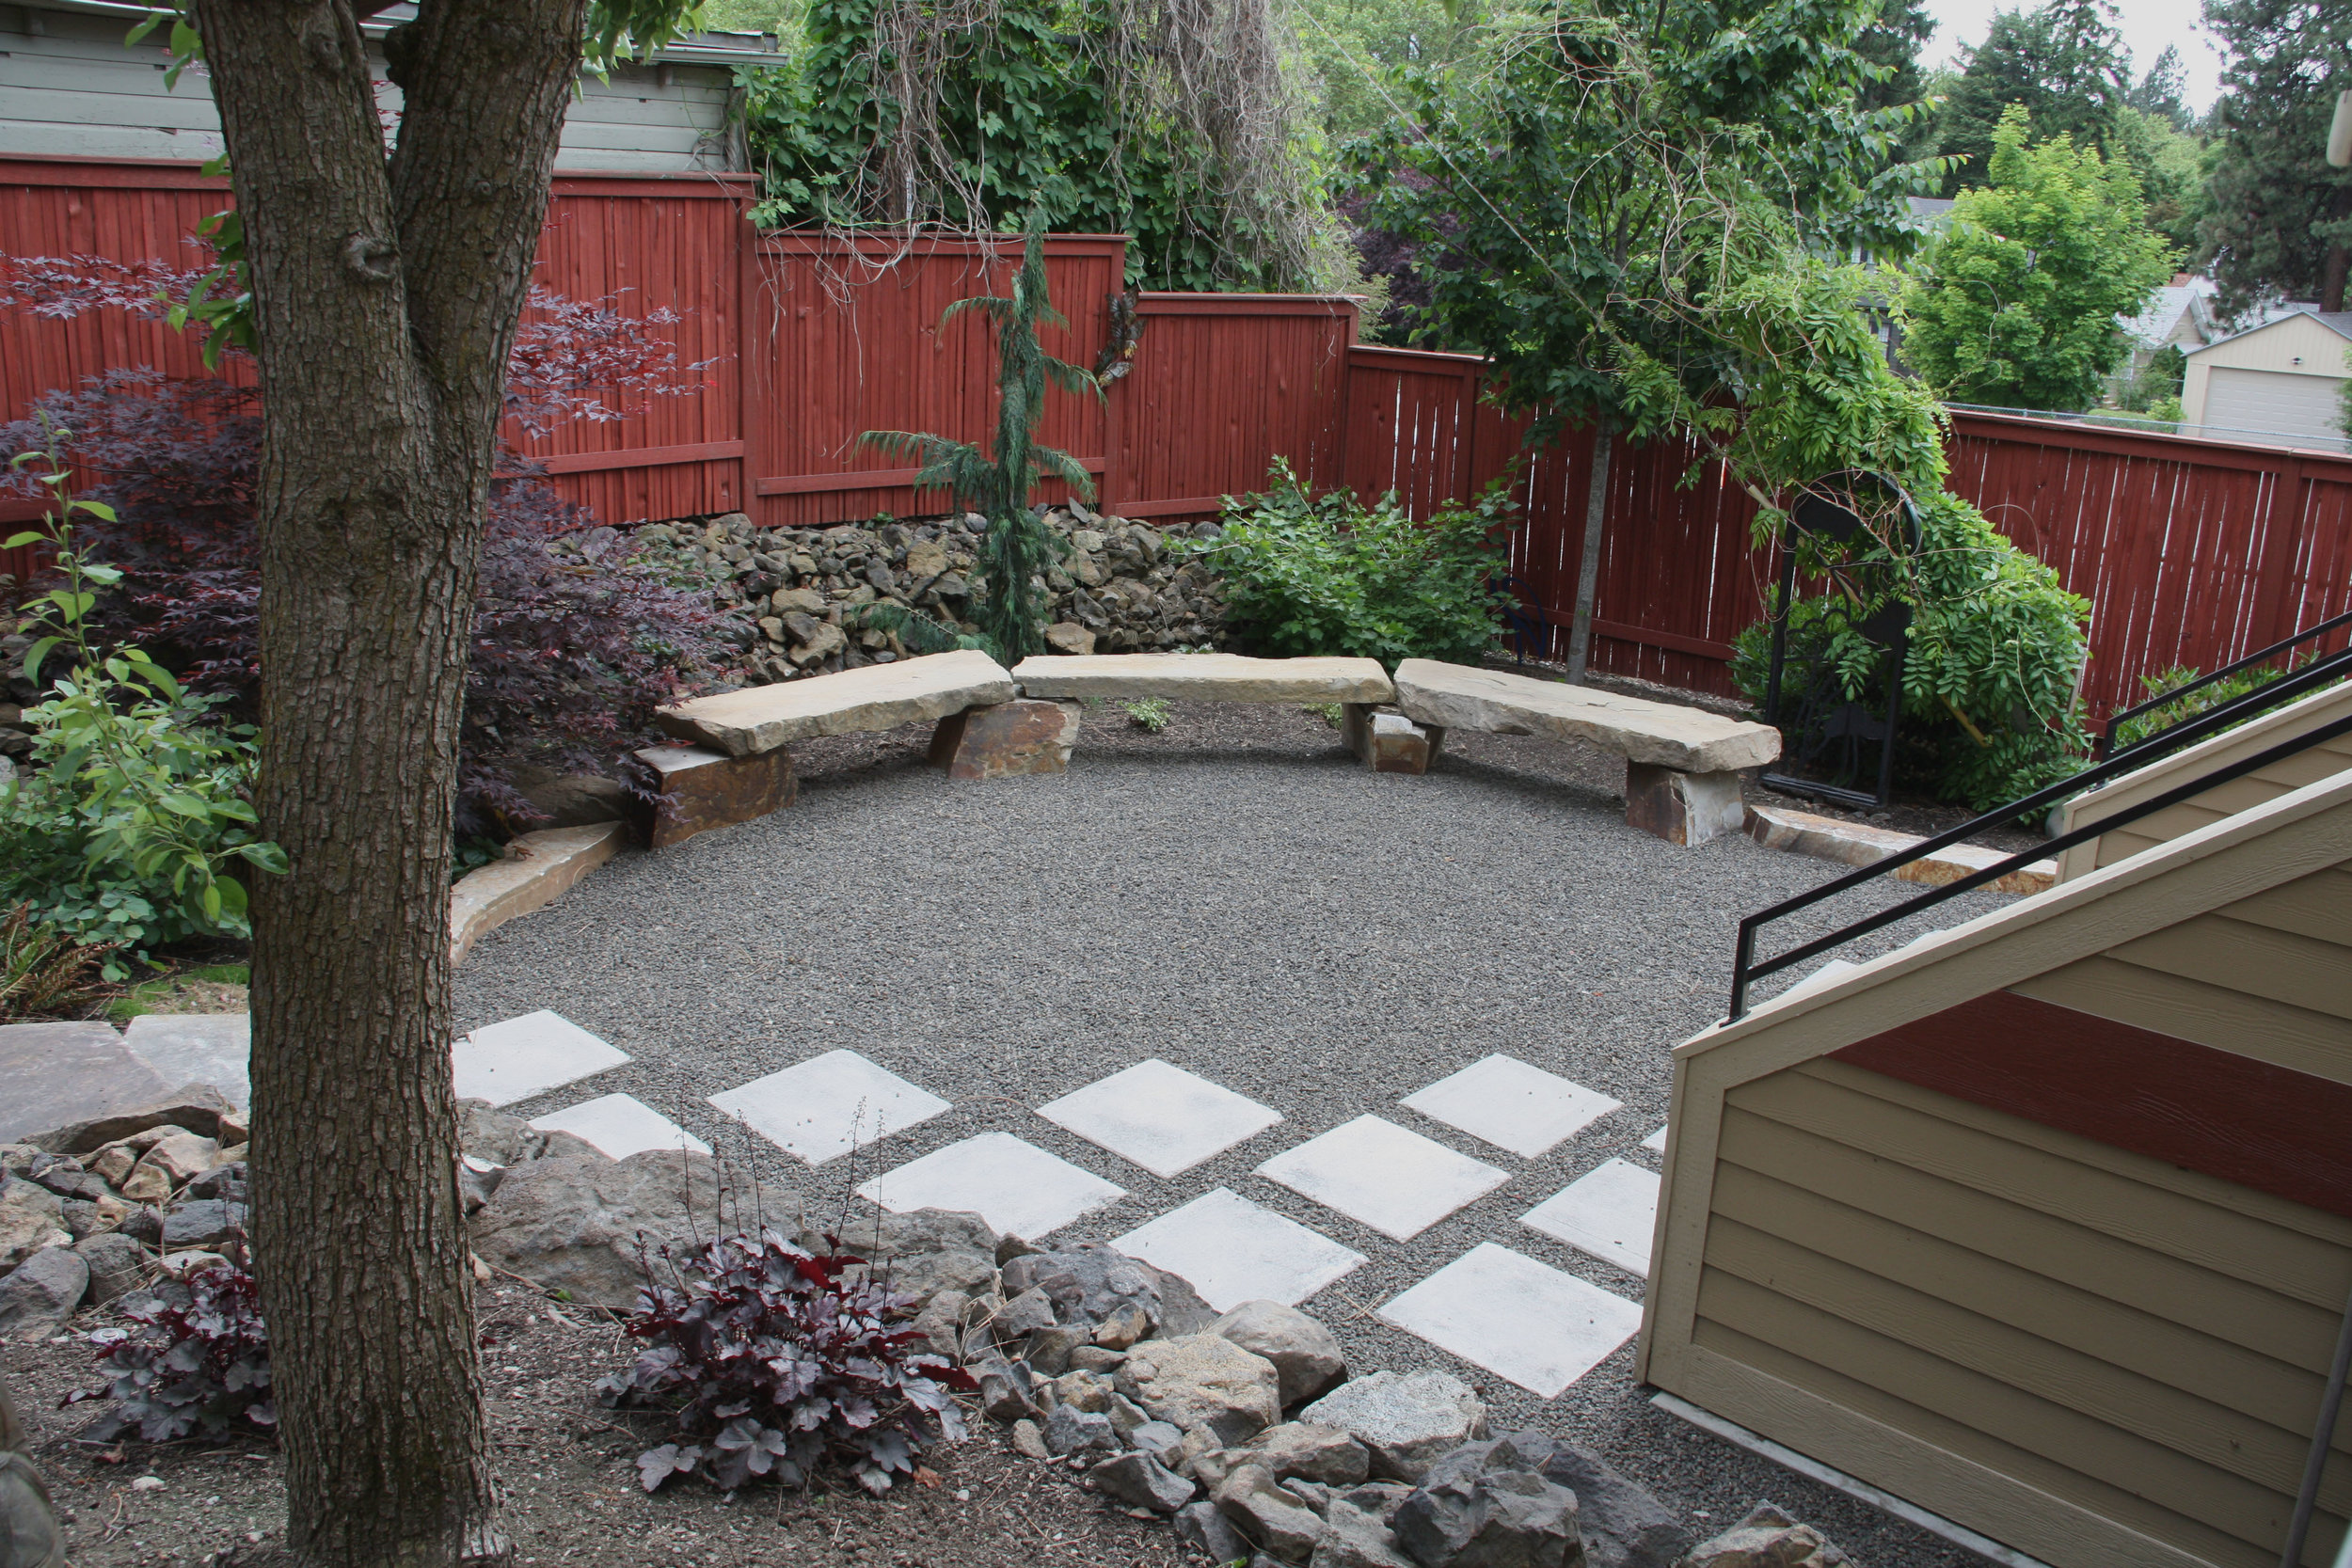 stone benches and gravel patio